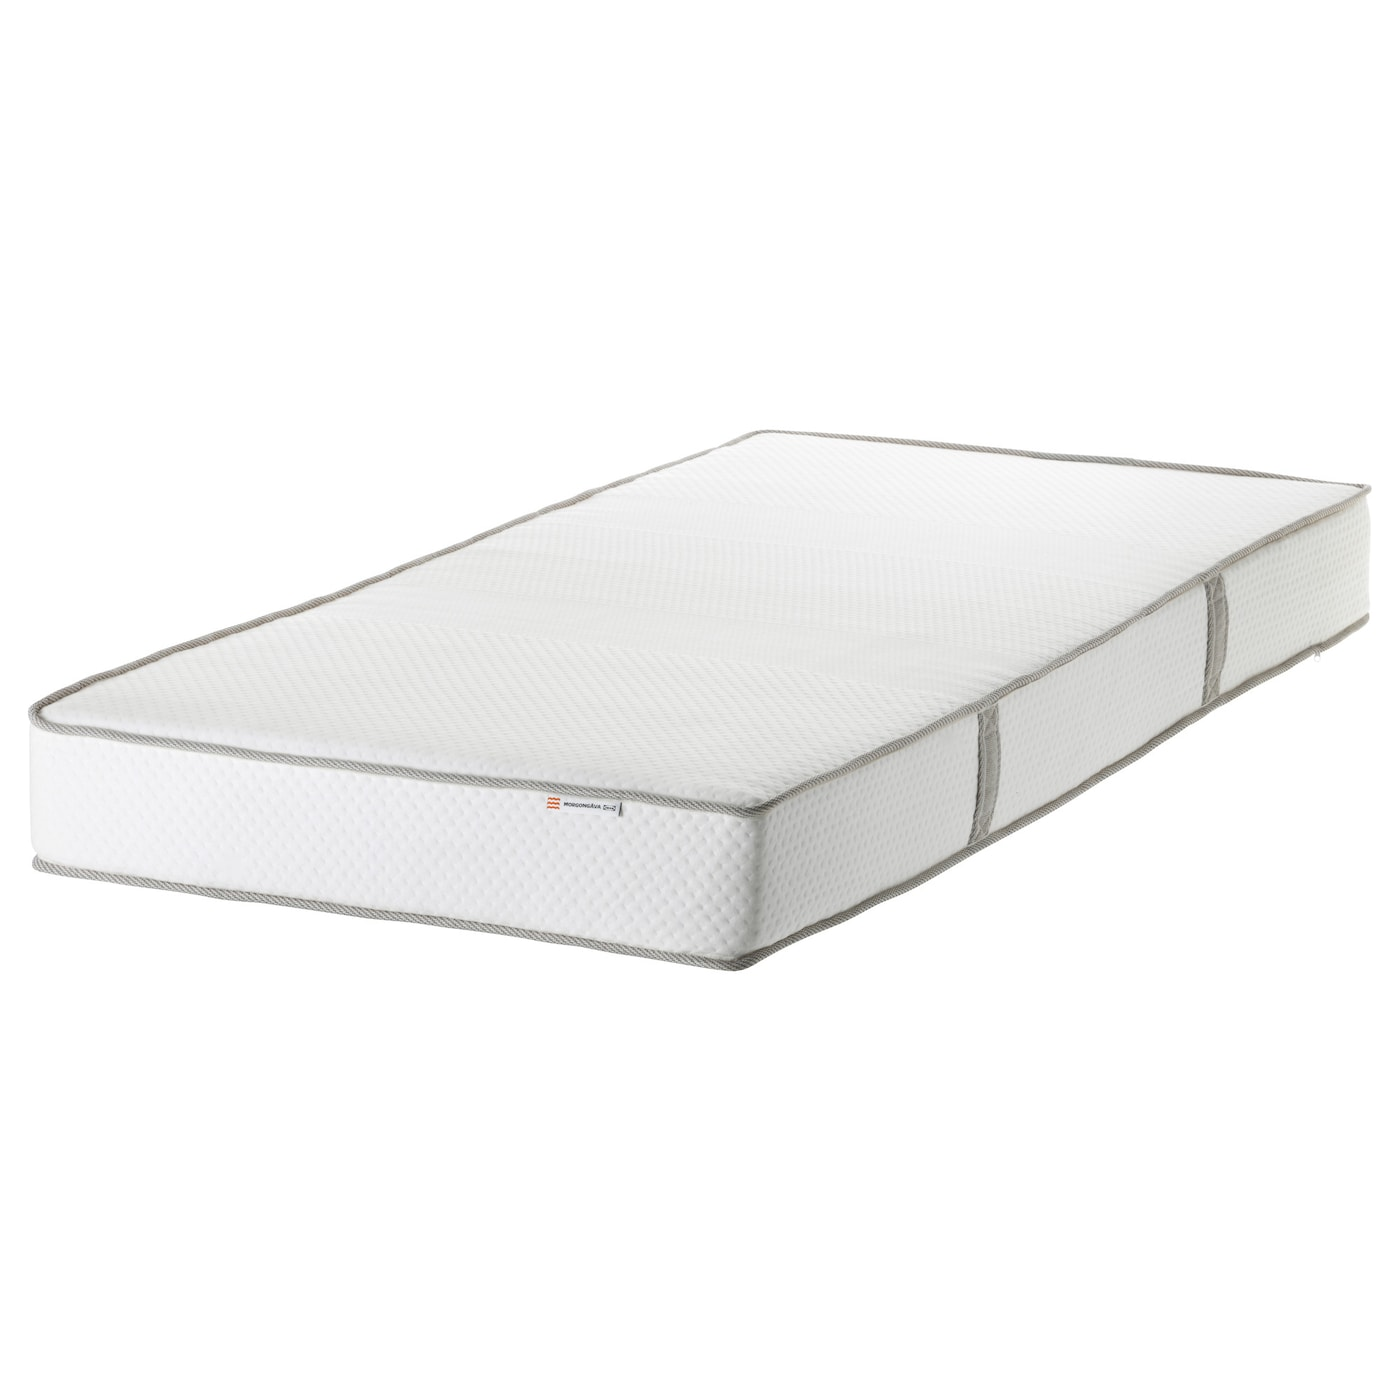 Morgong va matelas latex naturel mi ferme naturel 90 x 200 cm ikea - Matelas latex naturel dunlopillo ...